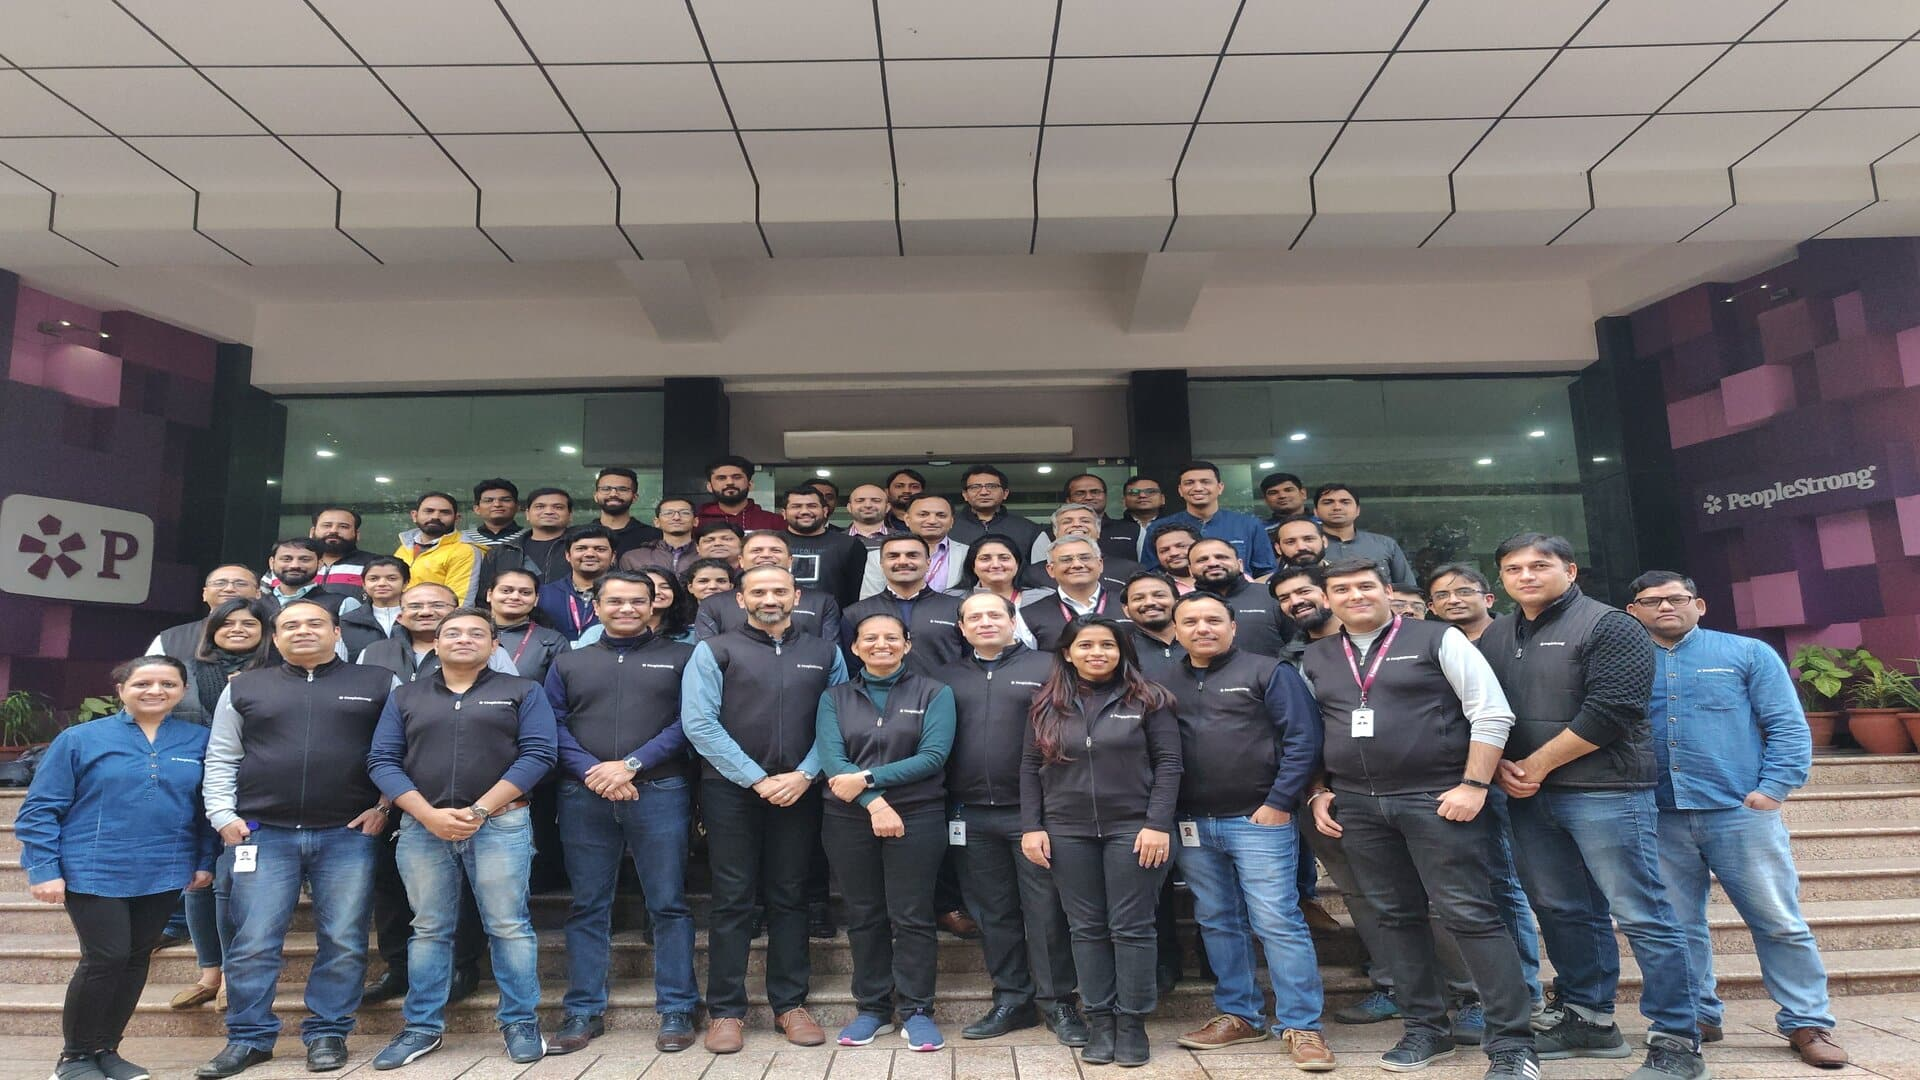 PeopleStrong set to recruit over 200 students from campuses across India